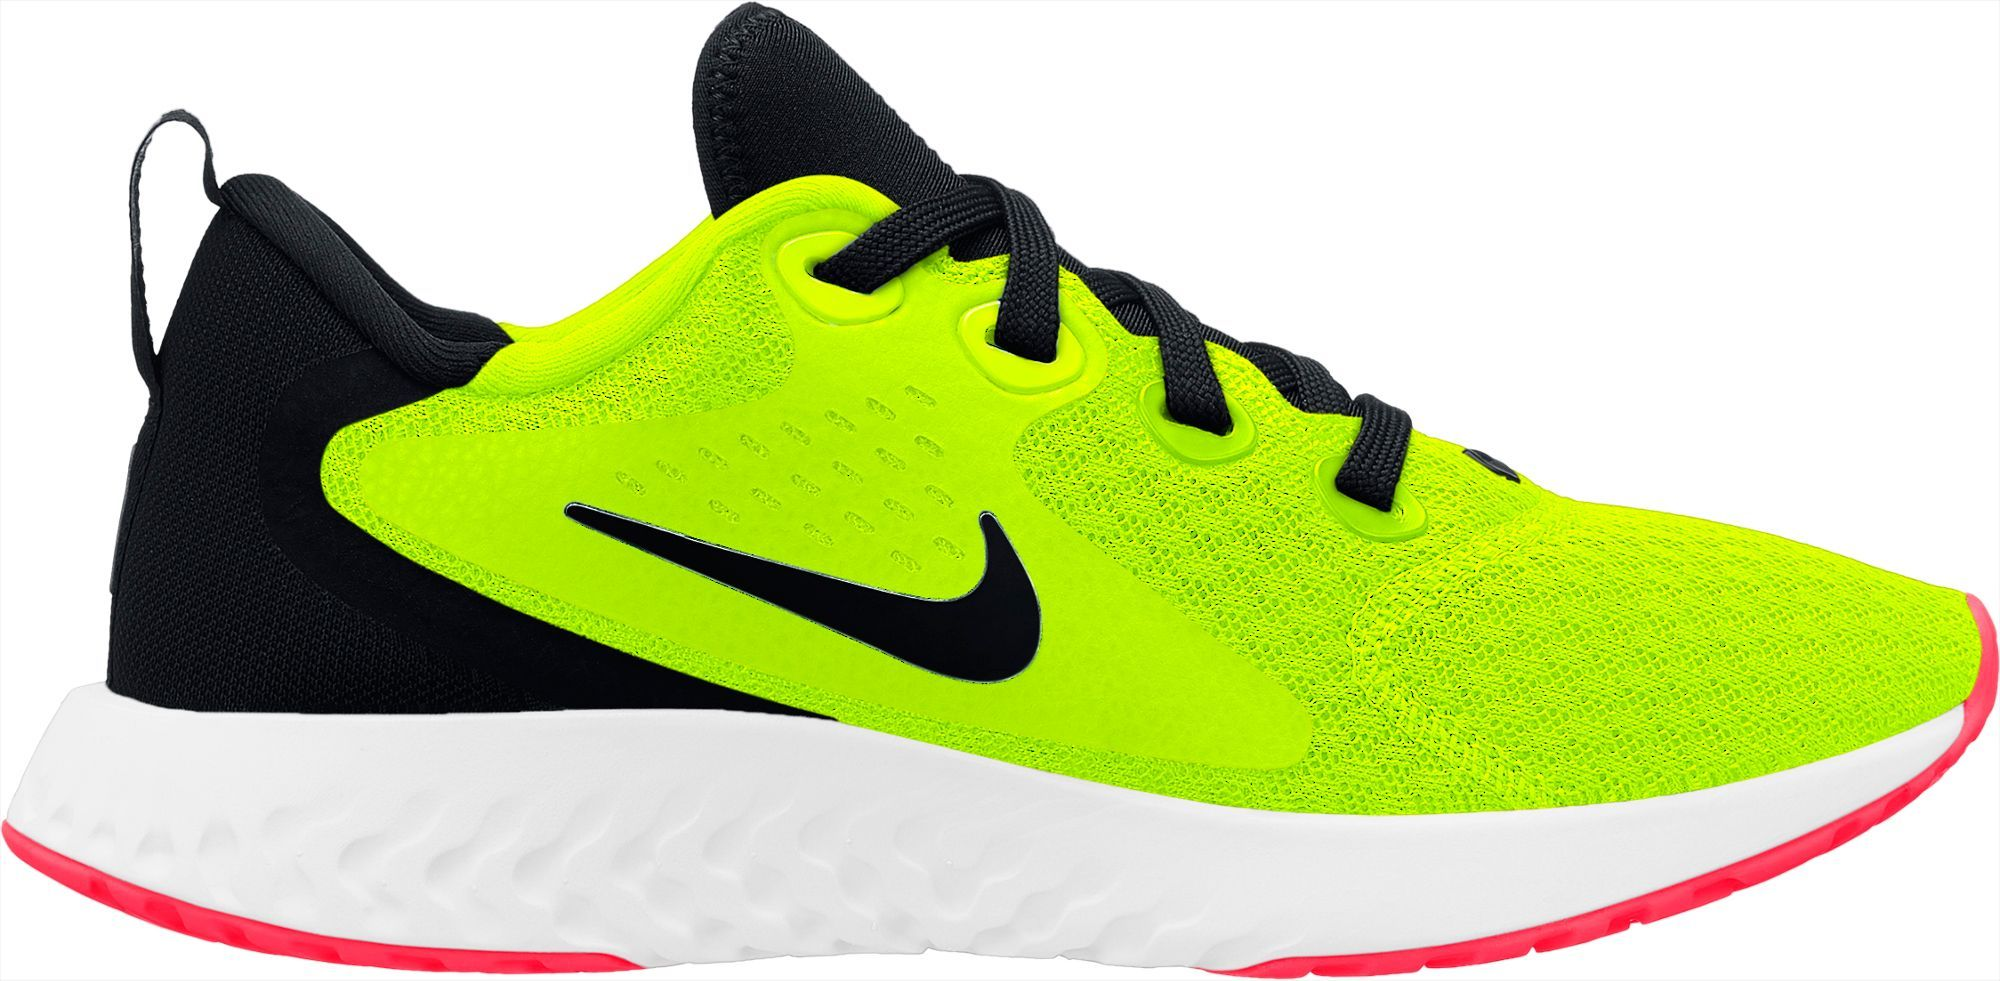 separation shoes b7d60 7f717 Nike Kids' Grade School Legend React Running Shoes, Boy's, Size: 3.5 ...